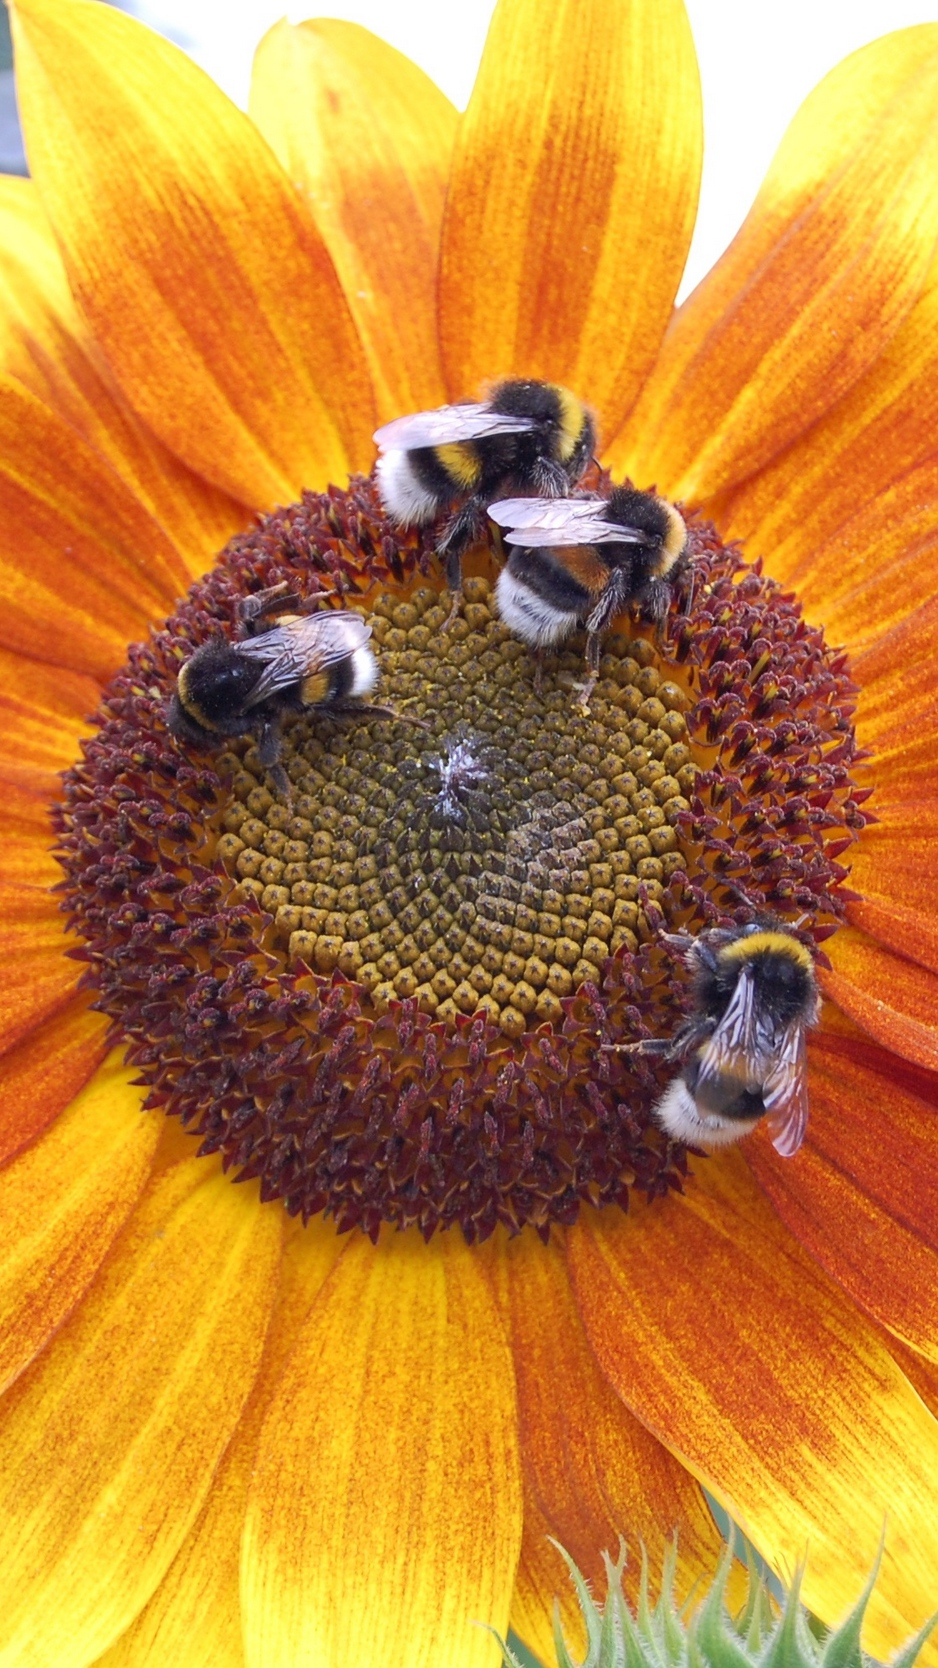 Download wallpapers 938x1668 sunflowers, bumblebees, flowers